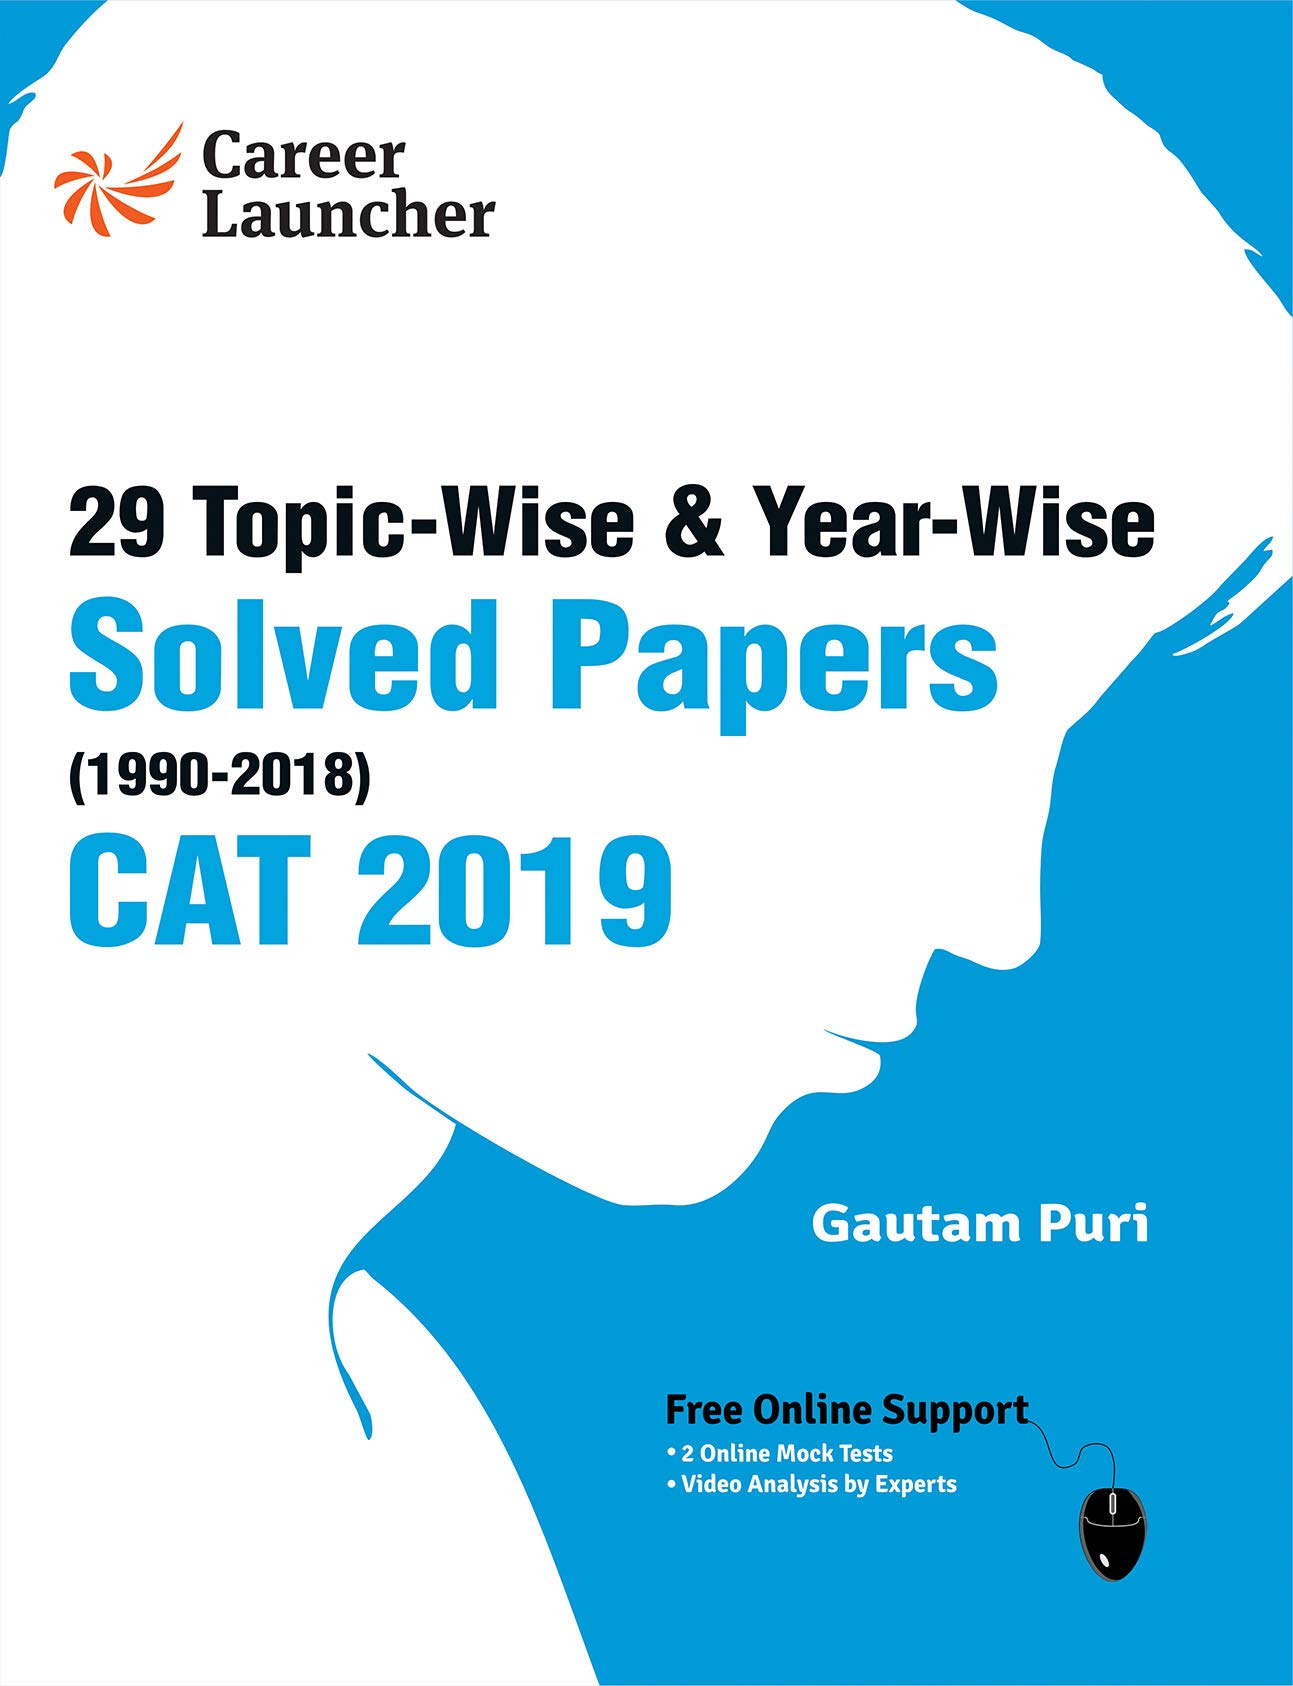 CAT (Common Admission Test) 2019 - 29 Topic-Wise & Year-Wise Solved Papers (1990-2018) Paperback – 22 December 2018